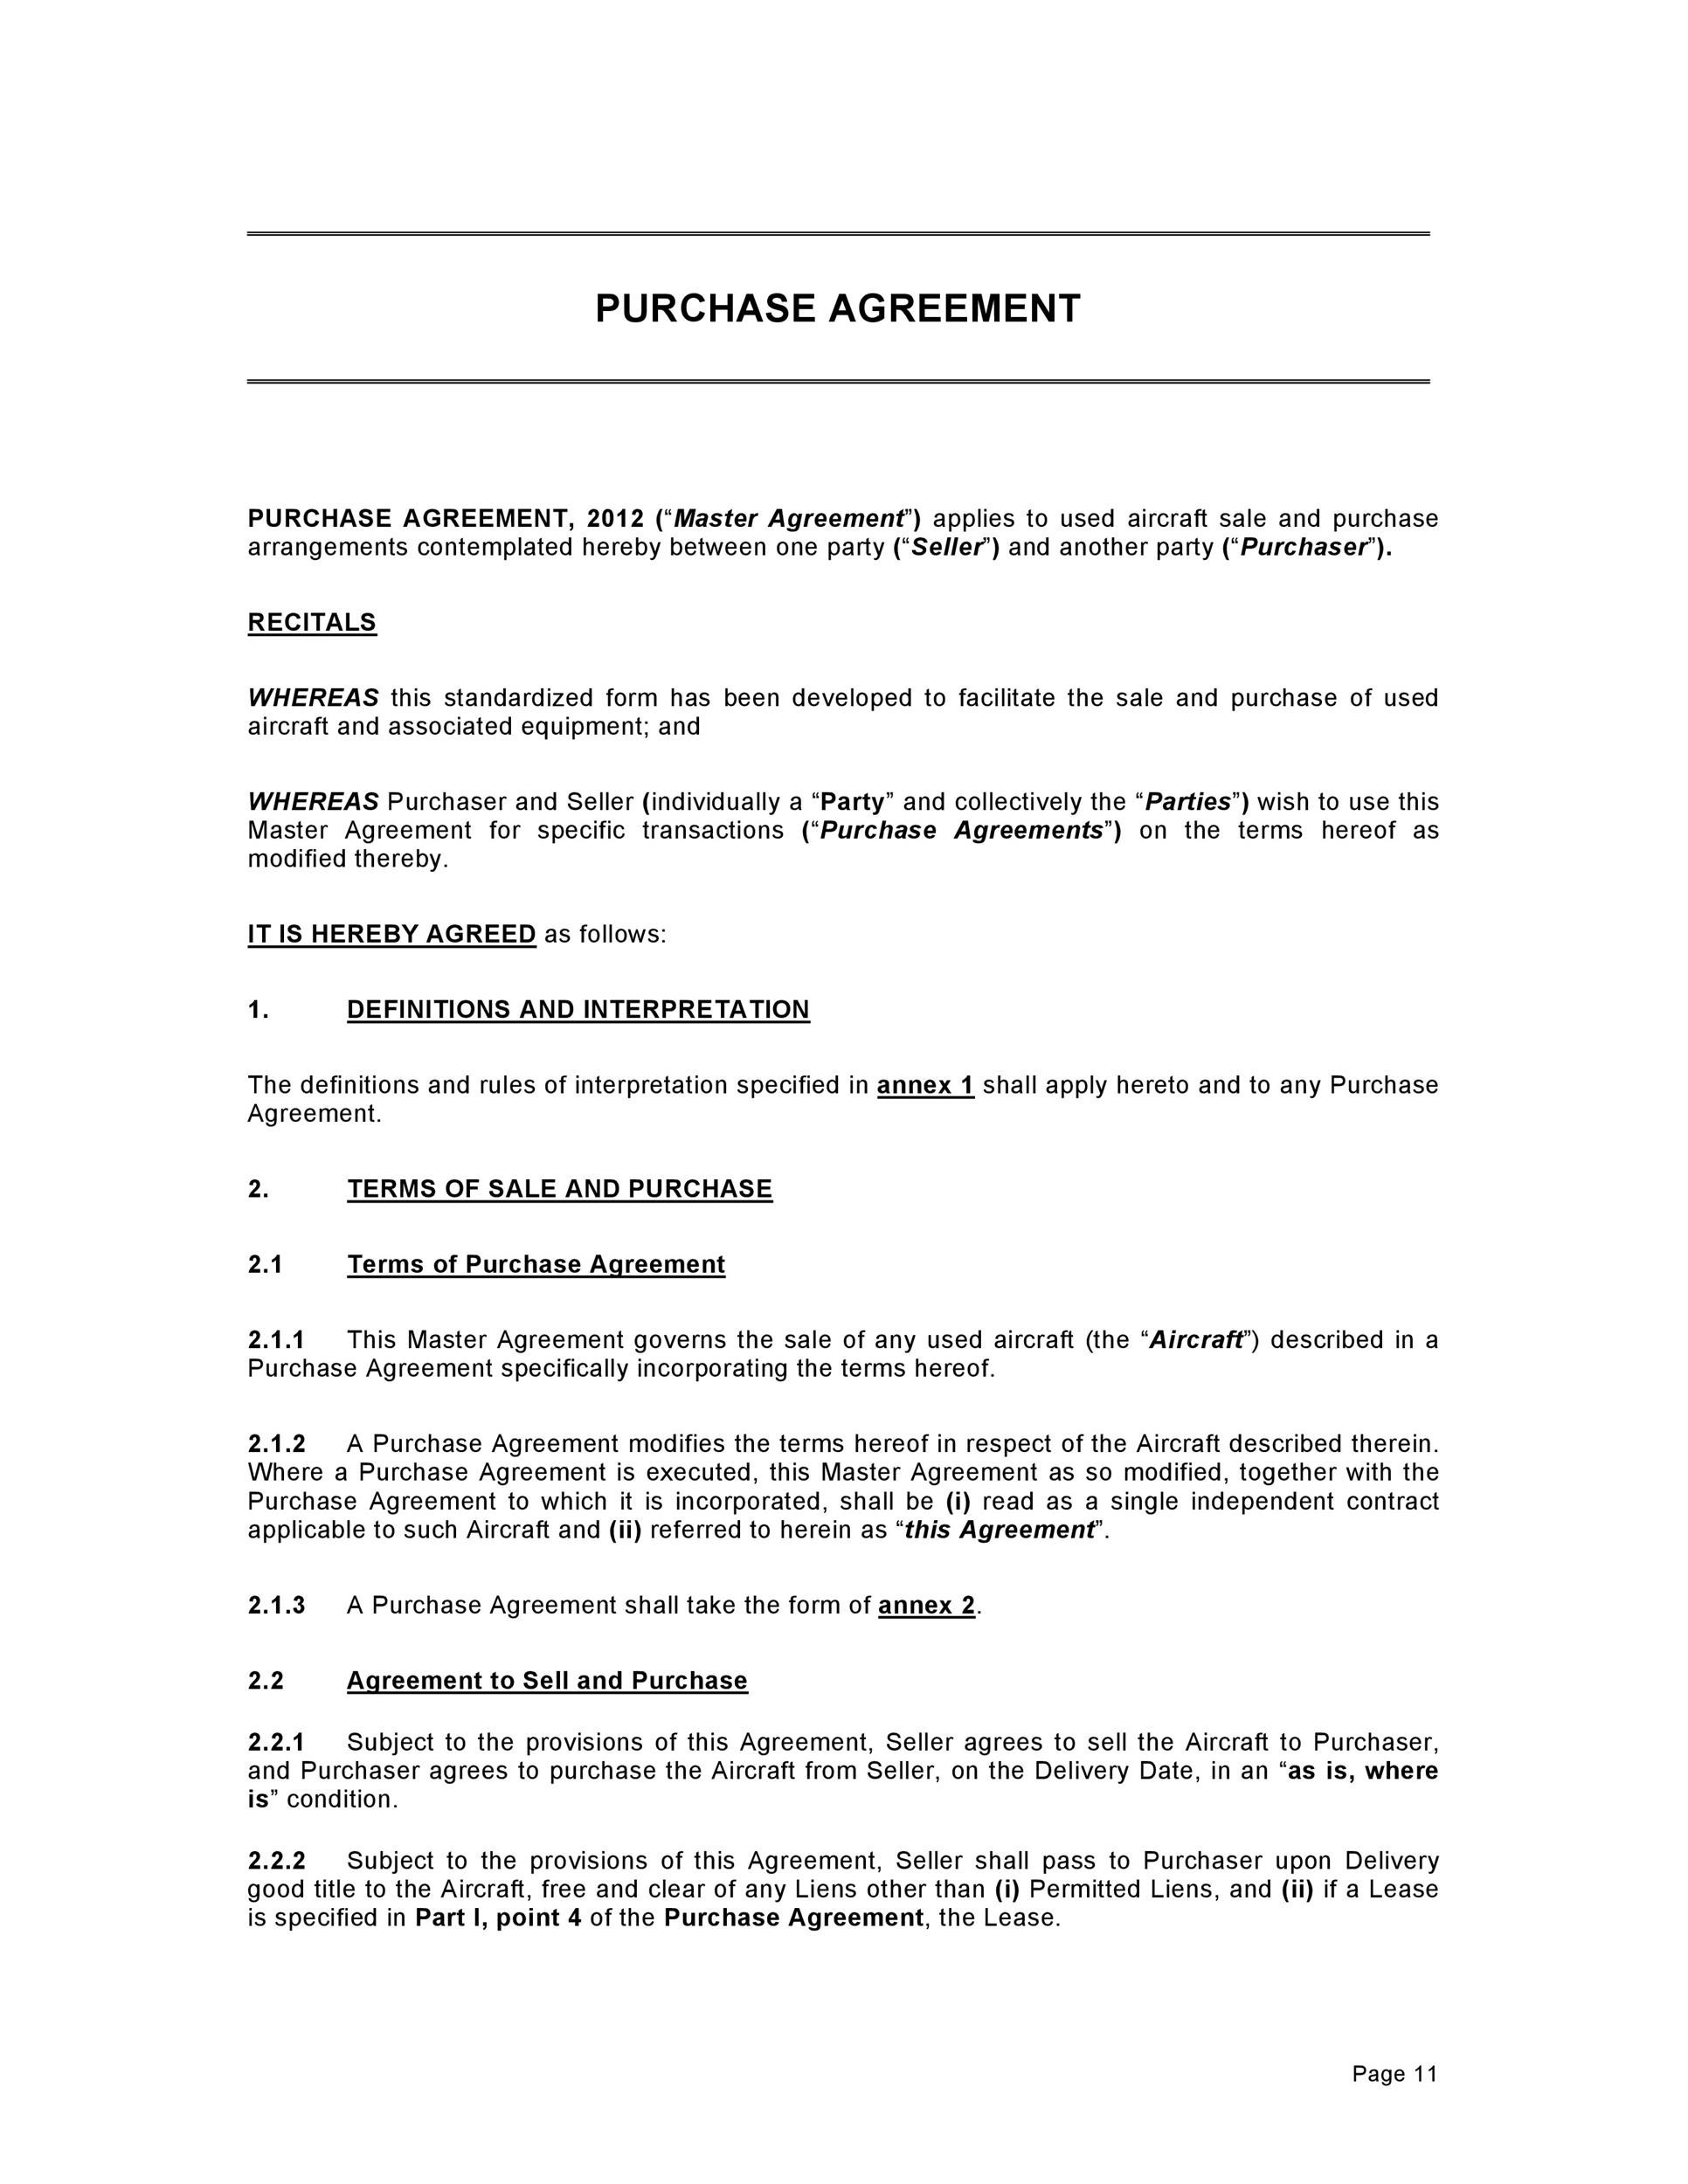 37 simple purchase agreement templates real estate business free purchase agreement template 11 wajeb Images